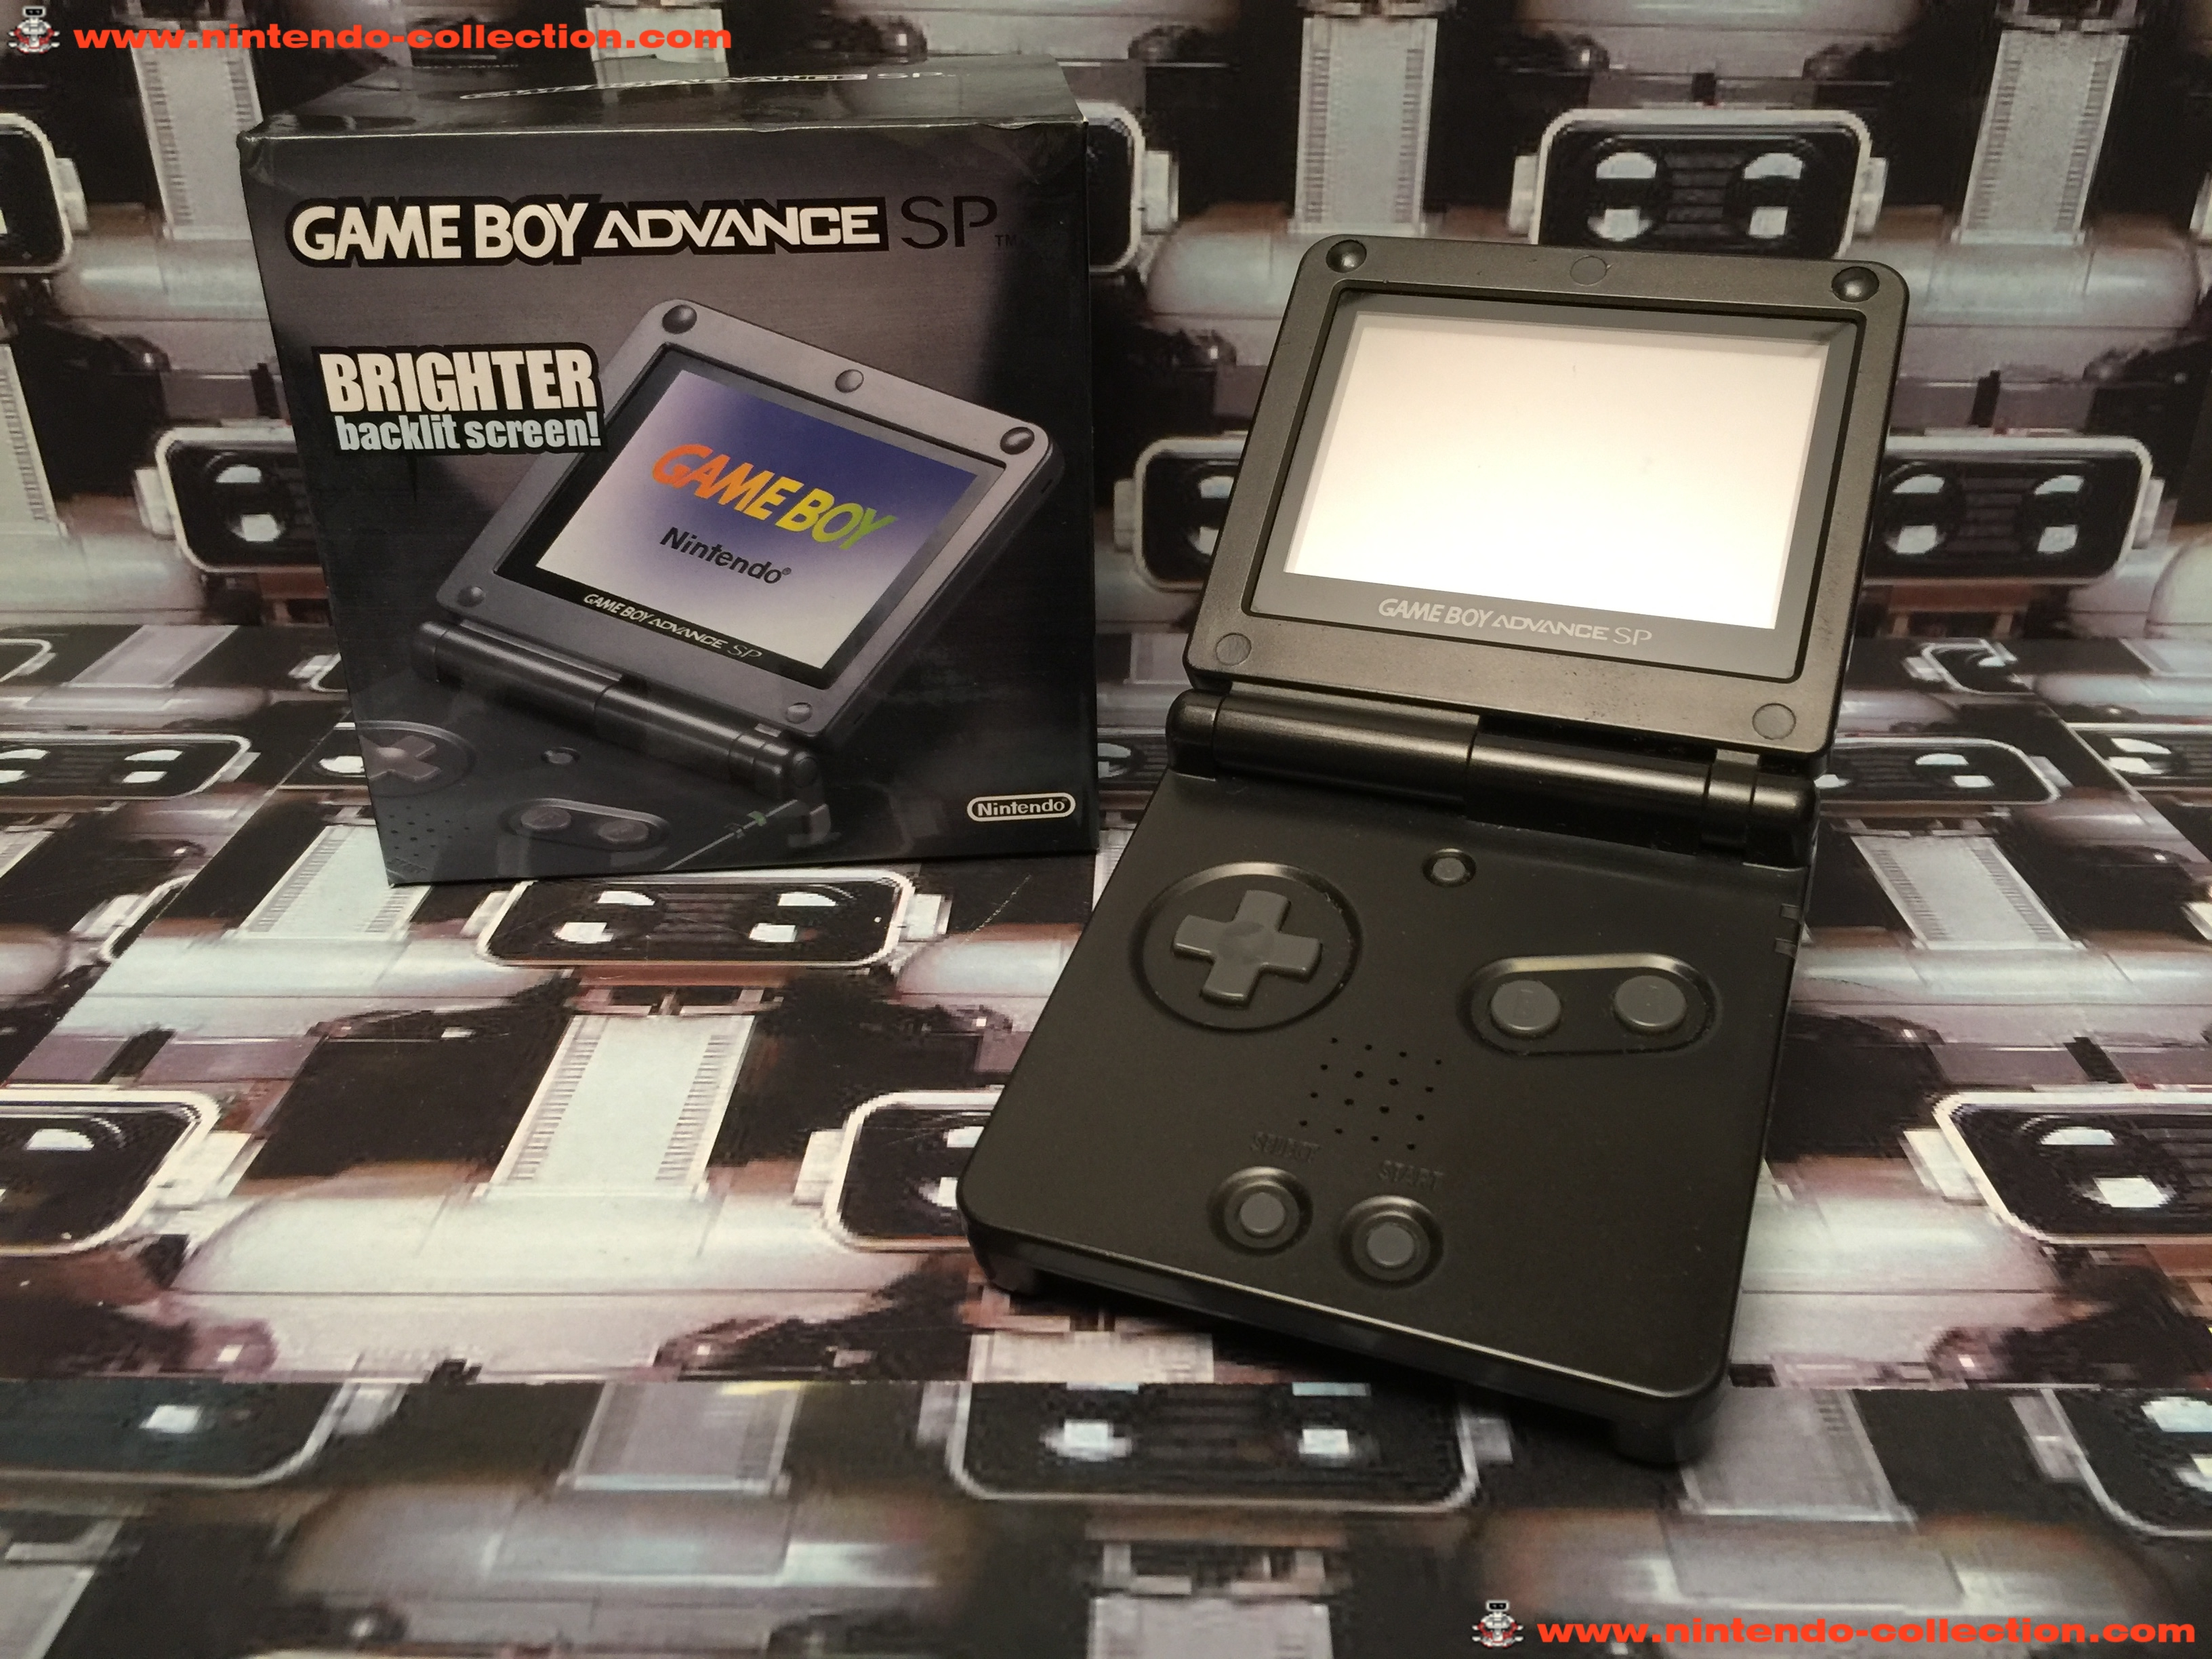 www.nintendo-collection.com - Gameboy Advance GBA SP Black Noir edition Singapour Singapore - 03